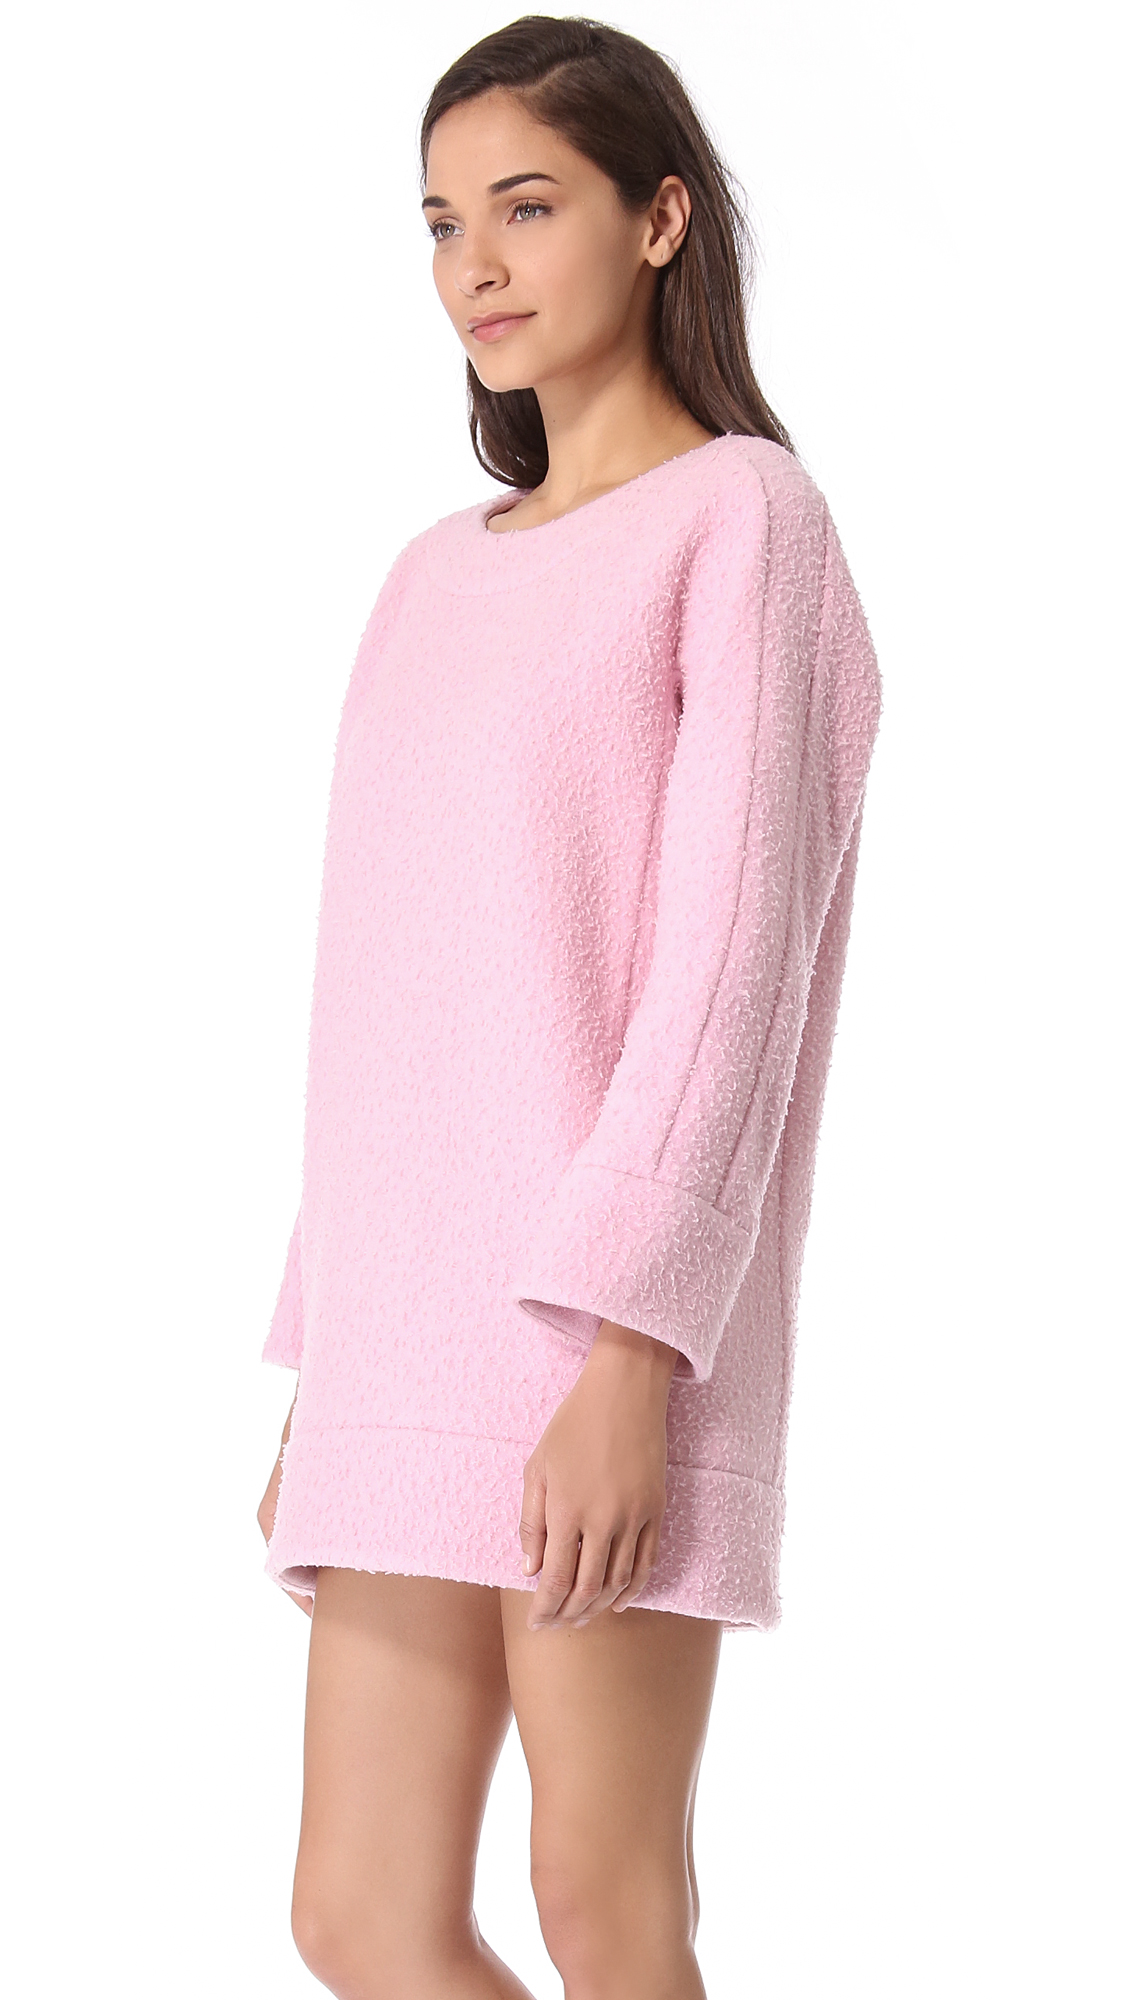 Pink Sweater Dress Cocktail Dresses 2016